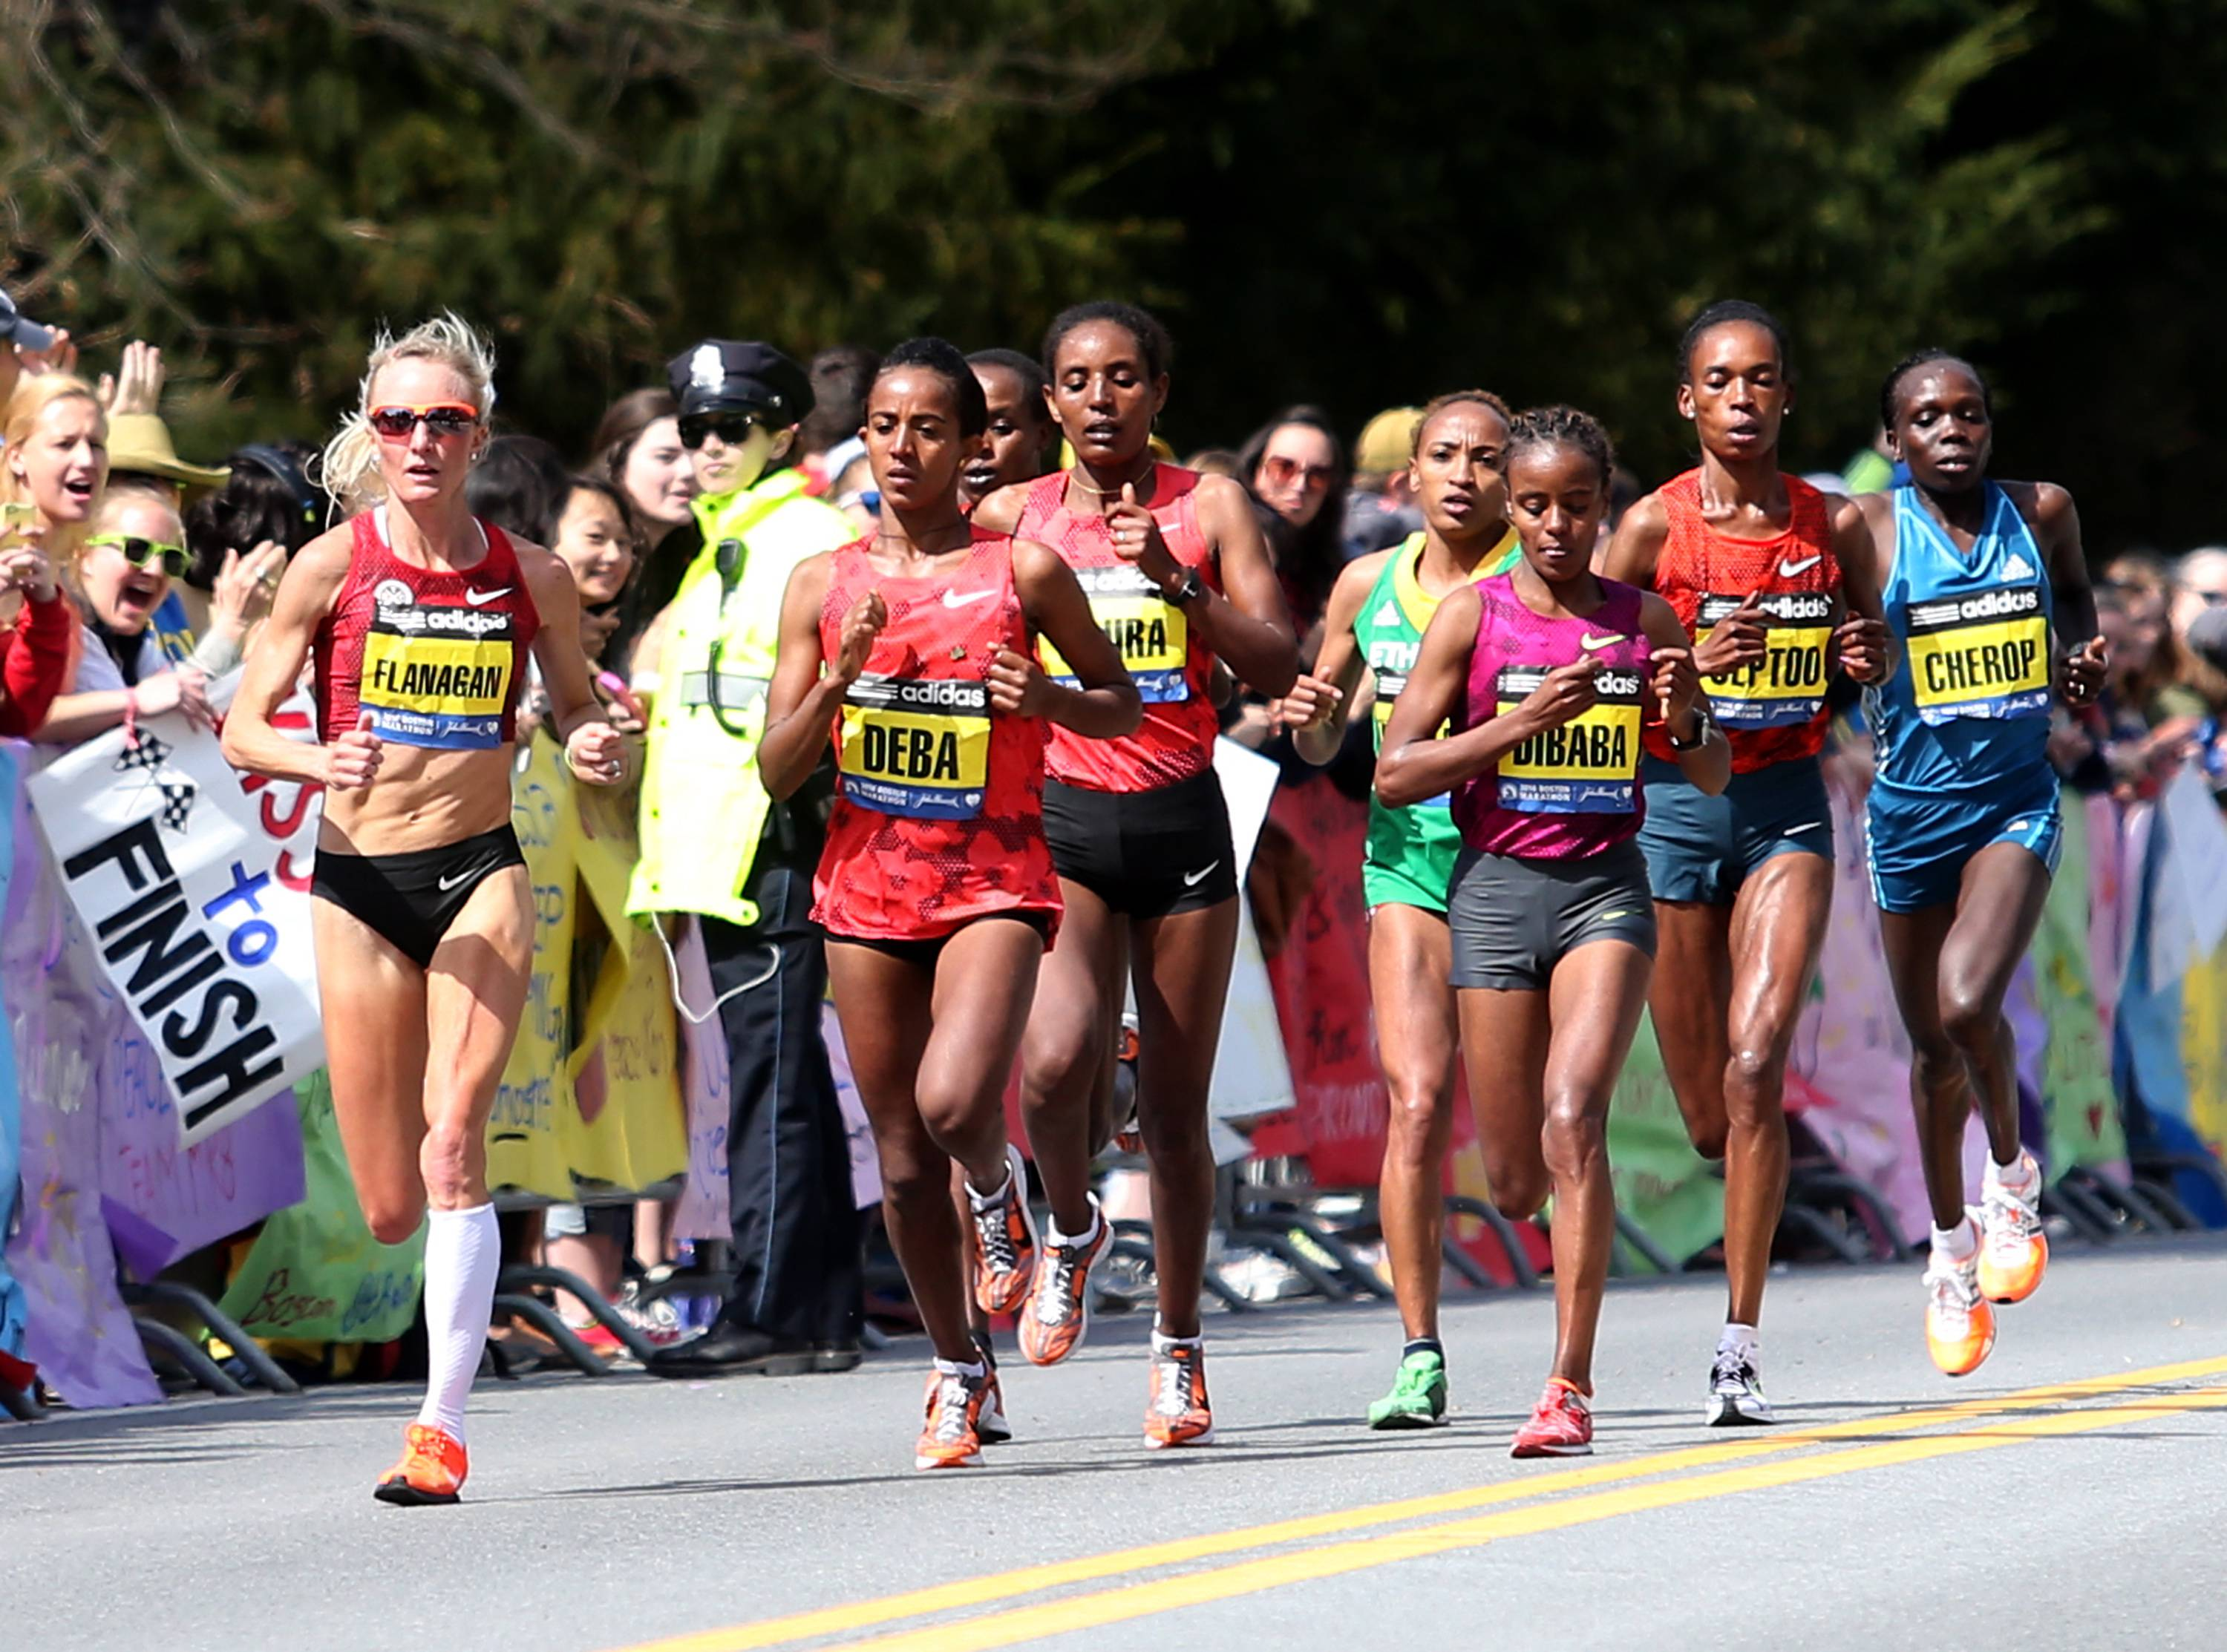 Shalane Flanagan leads the elite pack past Wellesley College during the 118th Boston Marathon Monday, April 21, 2014 in Wellesley.